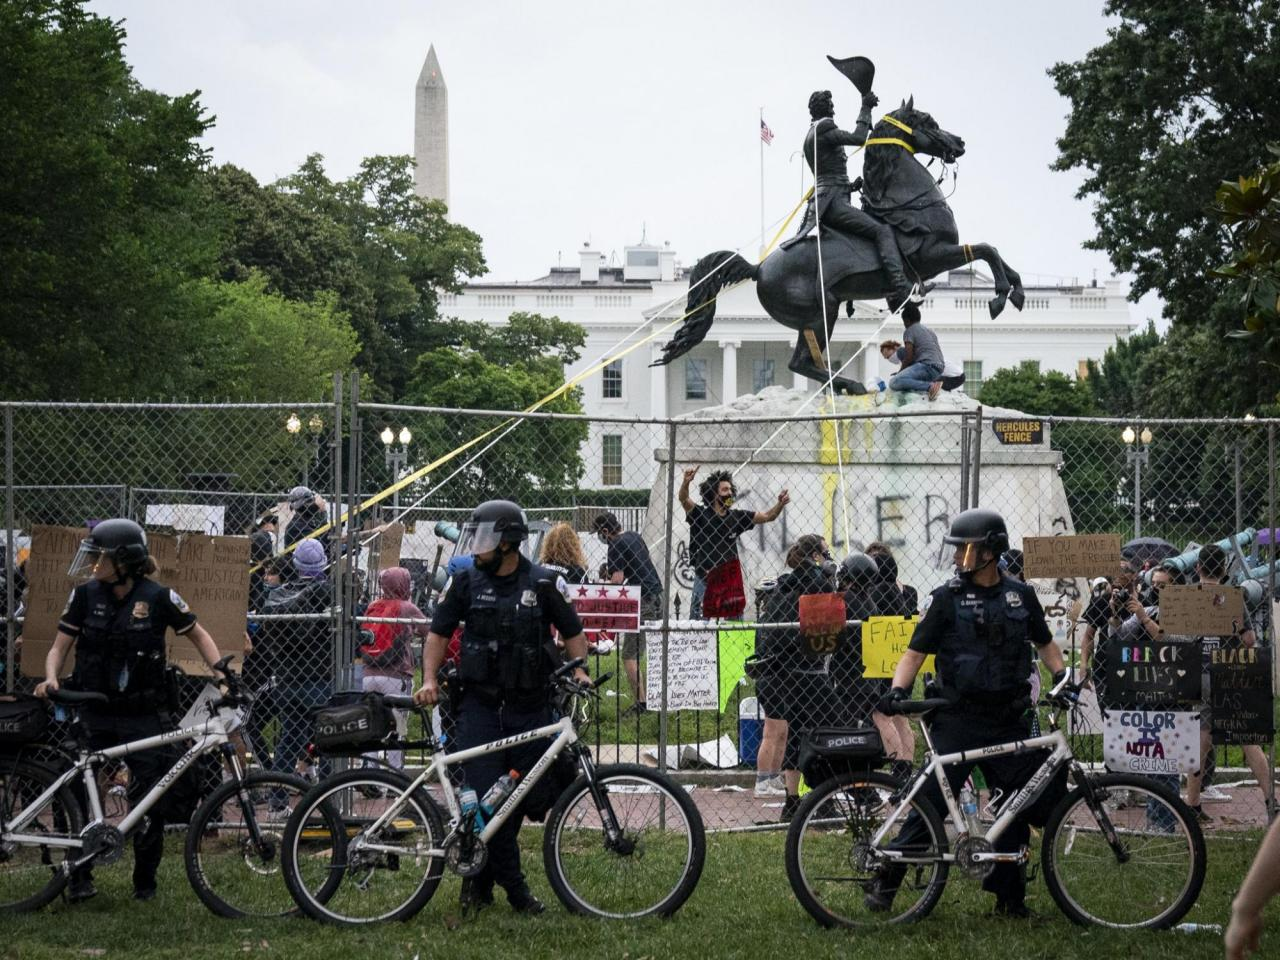 Protesters pulling down monument of Andrew Jackson, June 22, 2020.